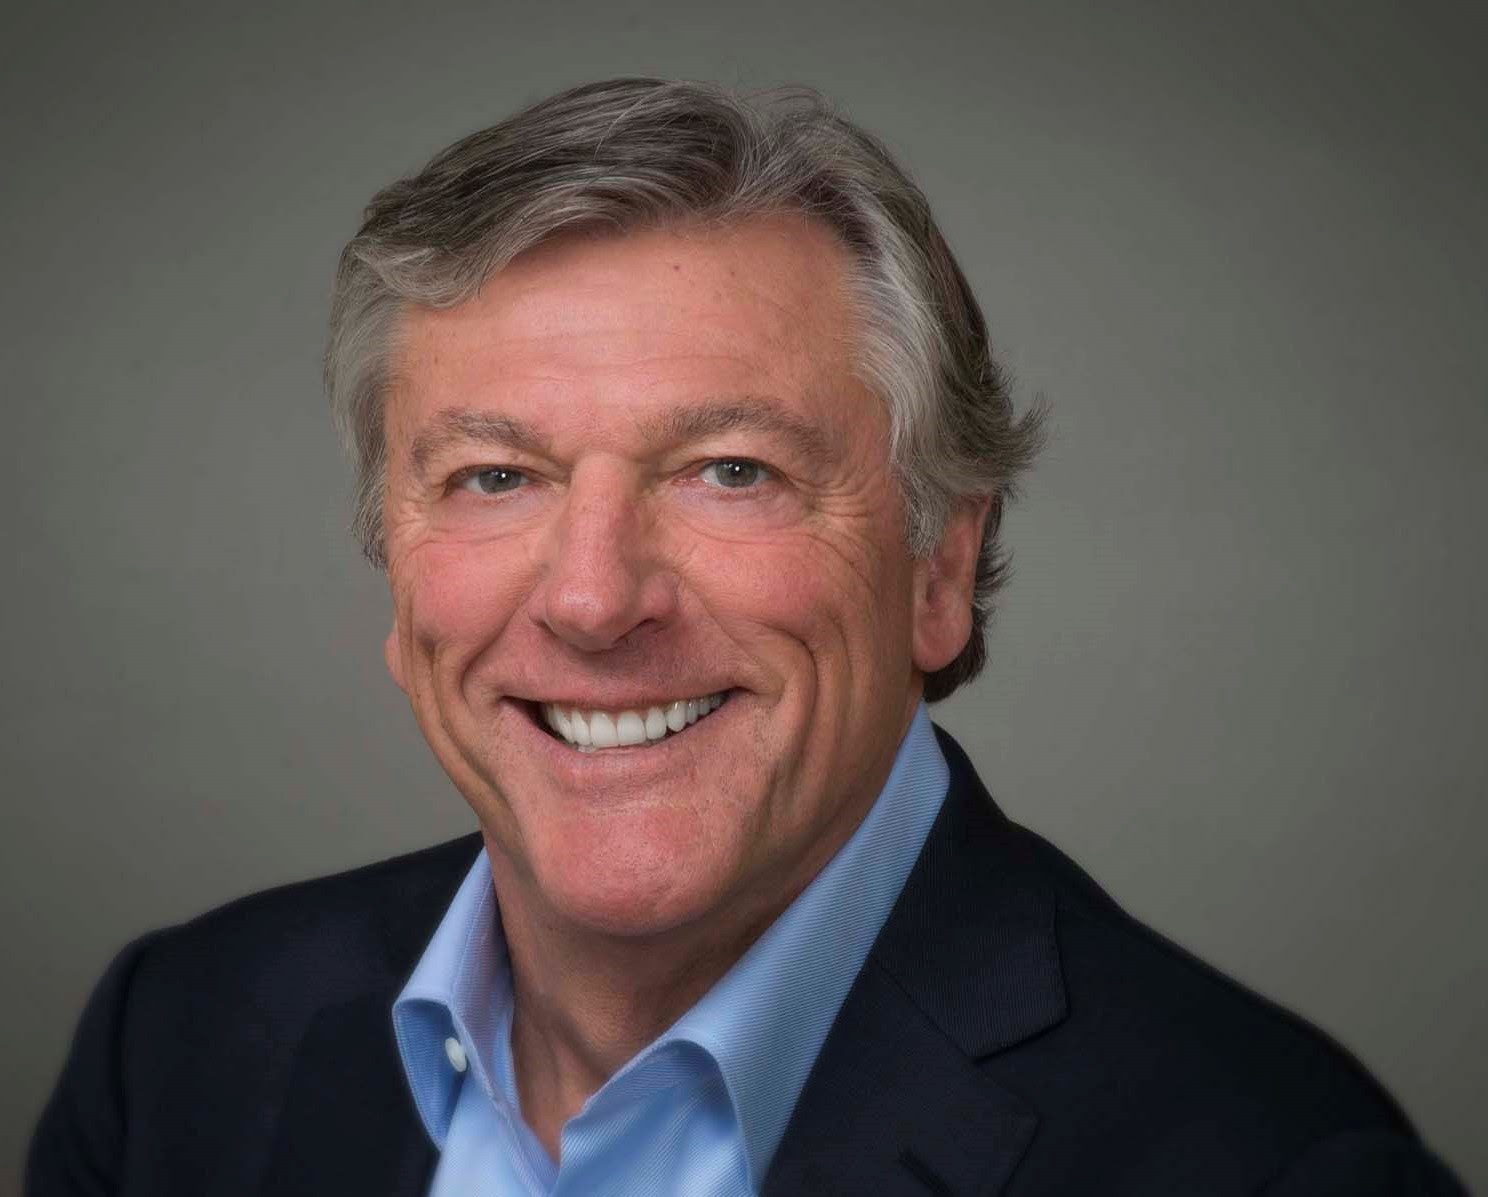 Follica Adds Two Leaders in Aesthetic Medicine and Dermatology to Its Board of Directors